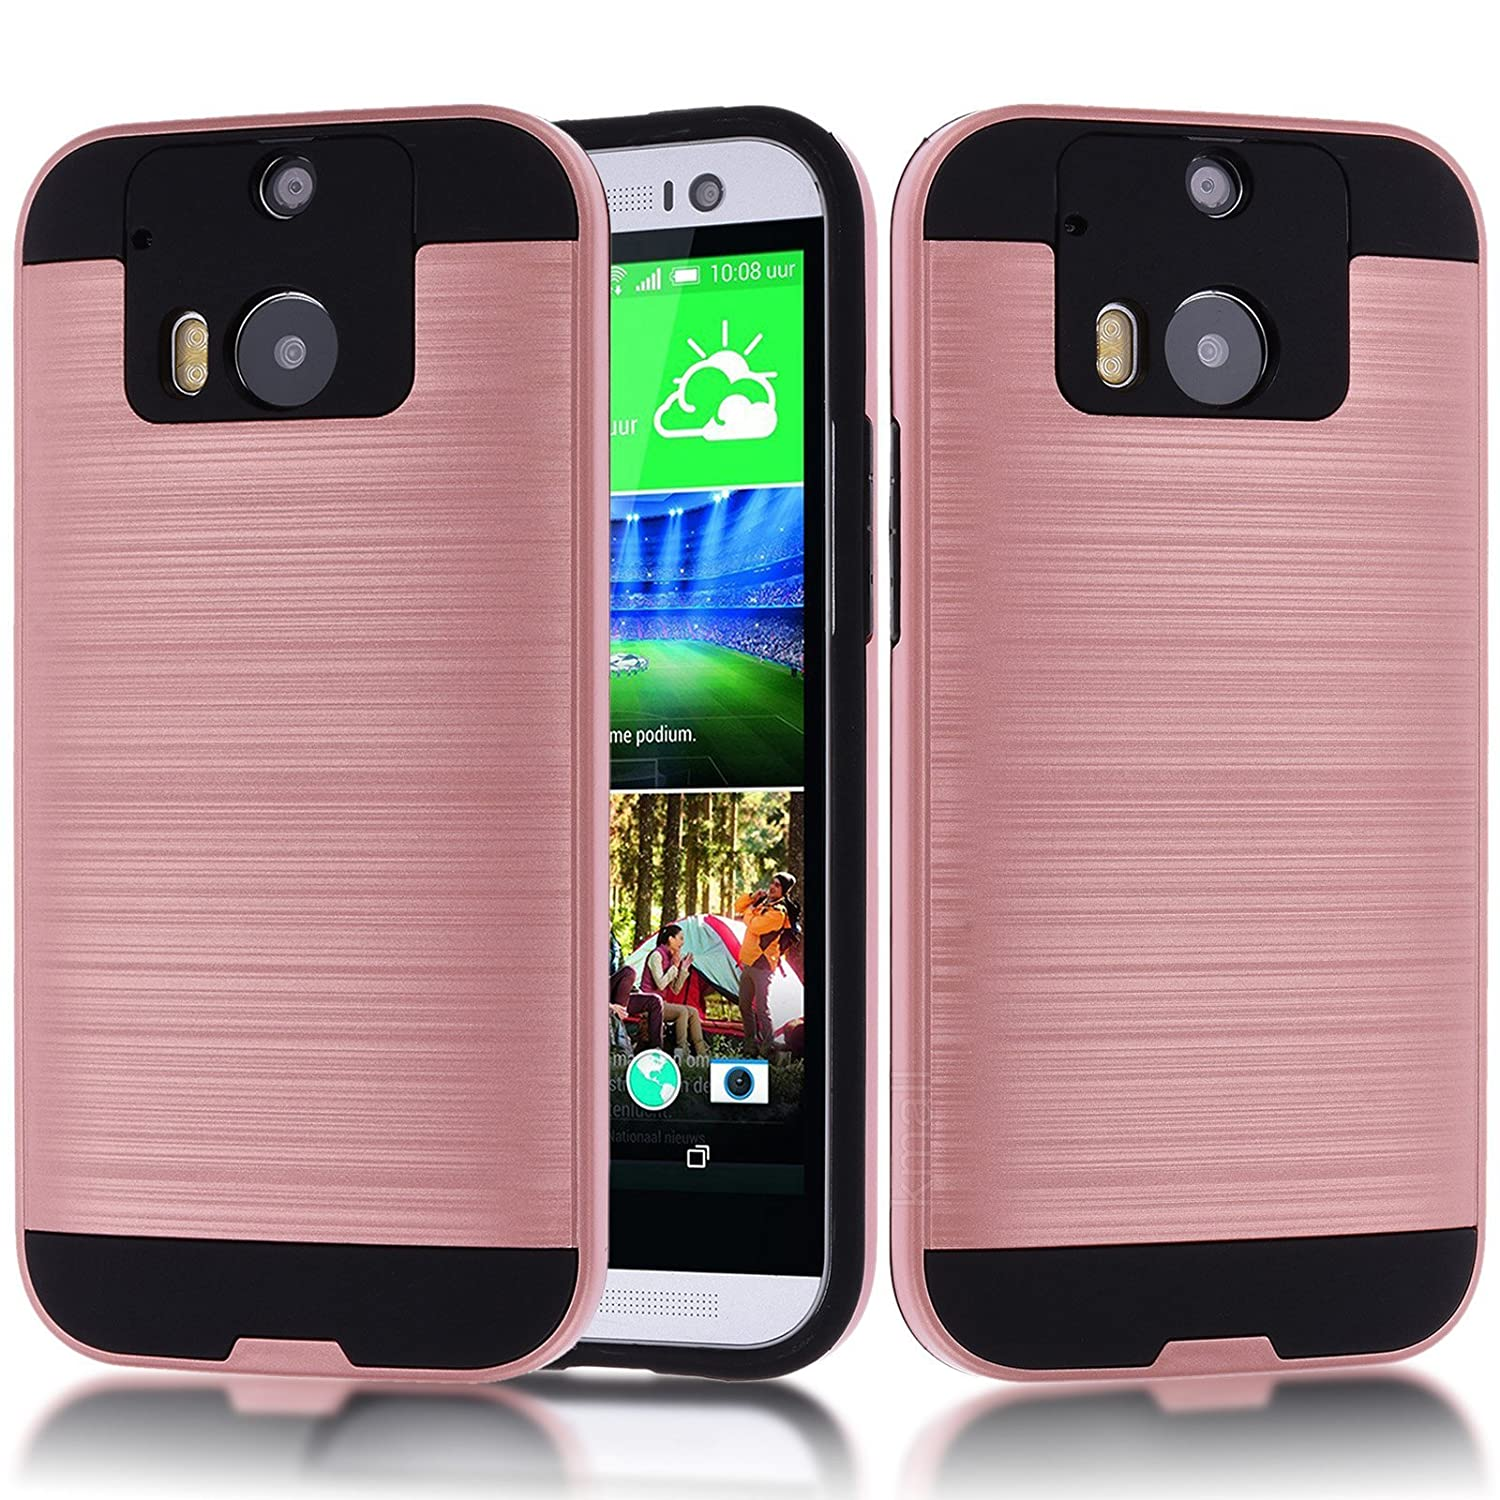 finest selection 1fb34 1e64b HTC One M8 Case,HTC M8 Case,Kmall Metal Brushed Texture Slim Impact  Resistant Heavy Duty Hybrid Dual Layer Full-Body Shockproof  Shock-Absorption ...